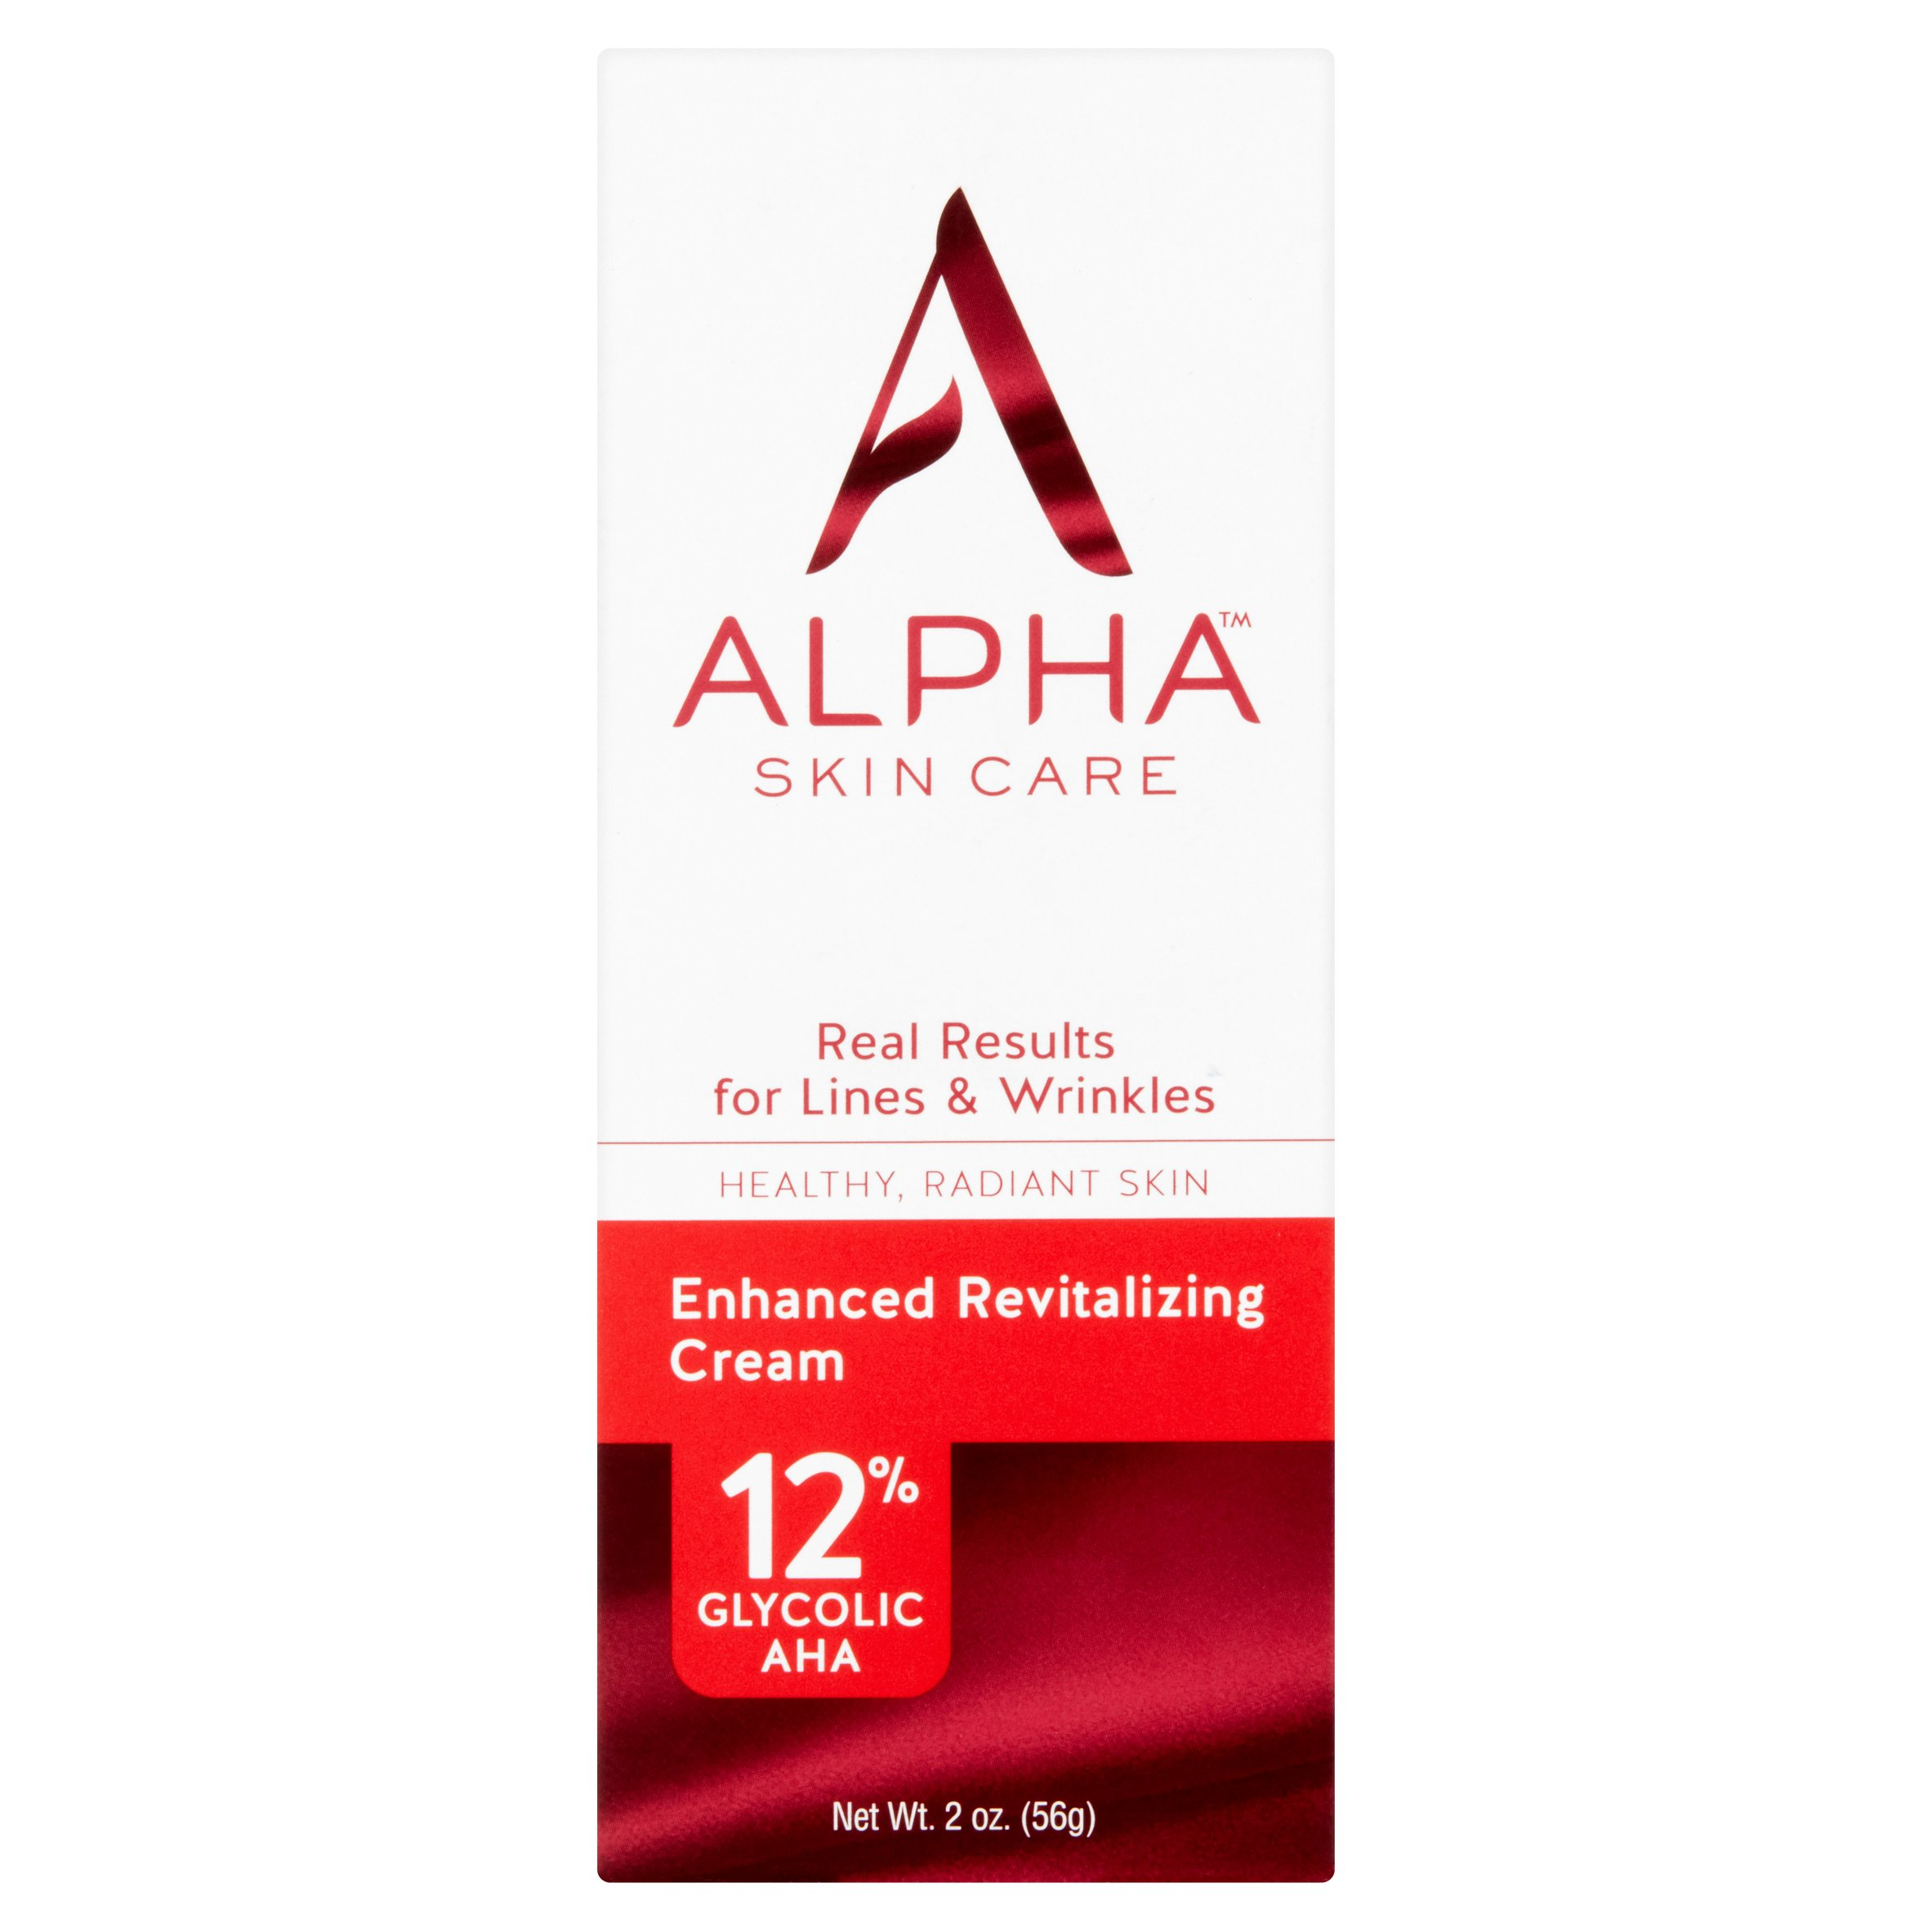 Alpha Skin Care Enhanced Revitalizing Cream, 2 oz by Neoteric Cosmetics, Inc.